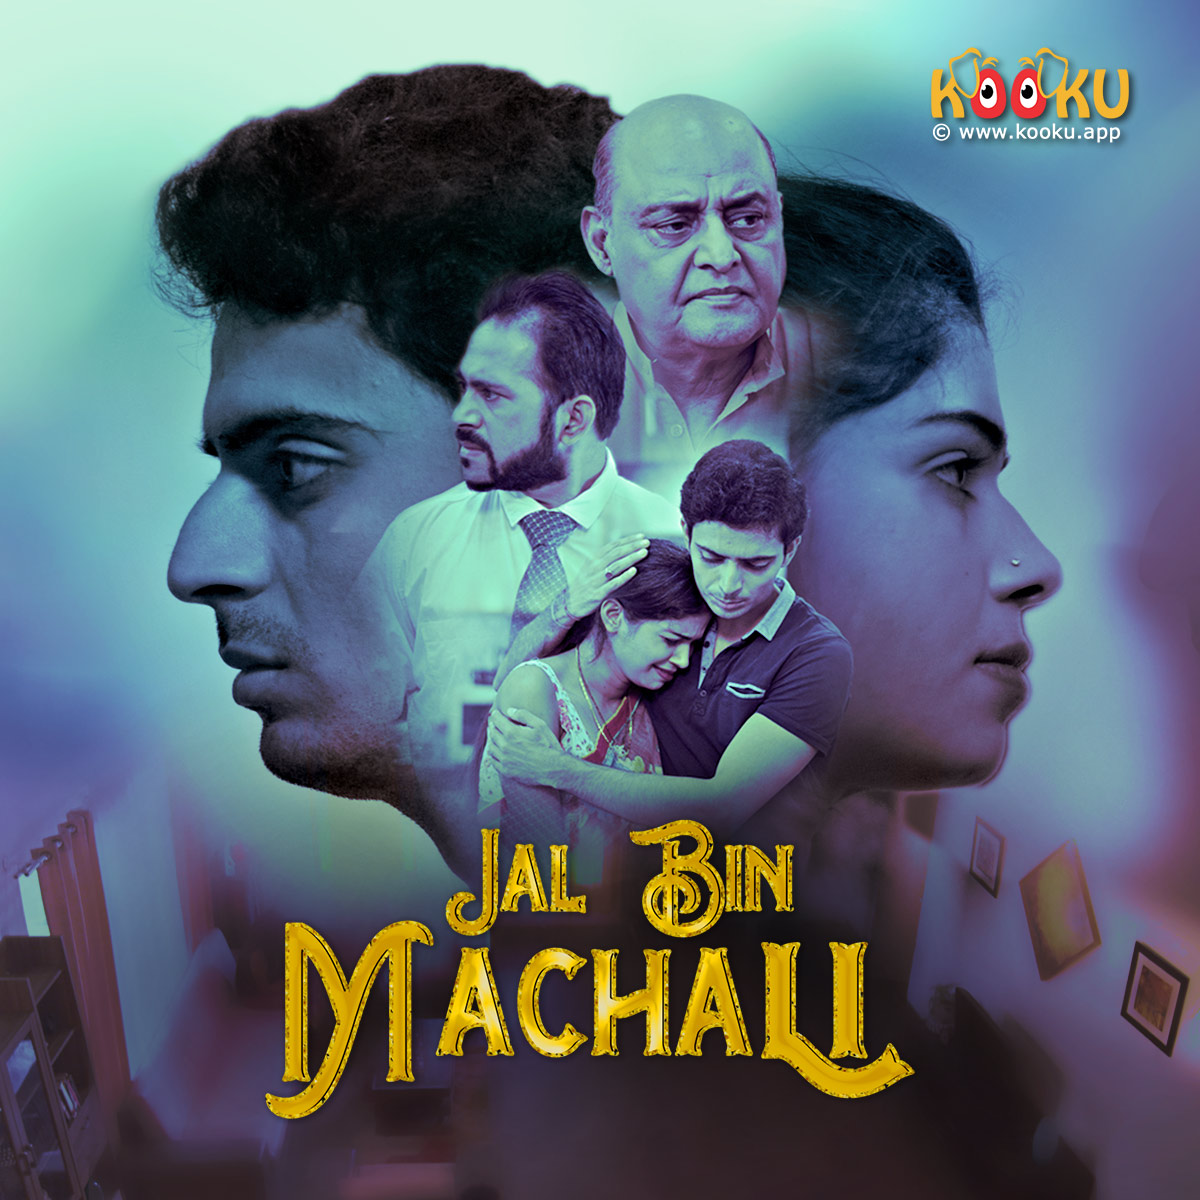 Jal Bin Machali 2020 S01 Hindi Kooku App Web Series Official Trailer 720p HDRip 40MB x264 AAC